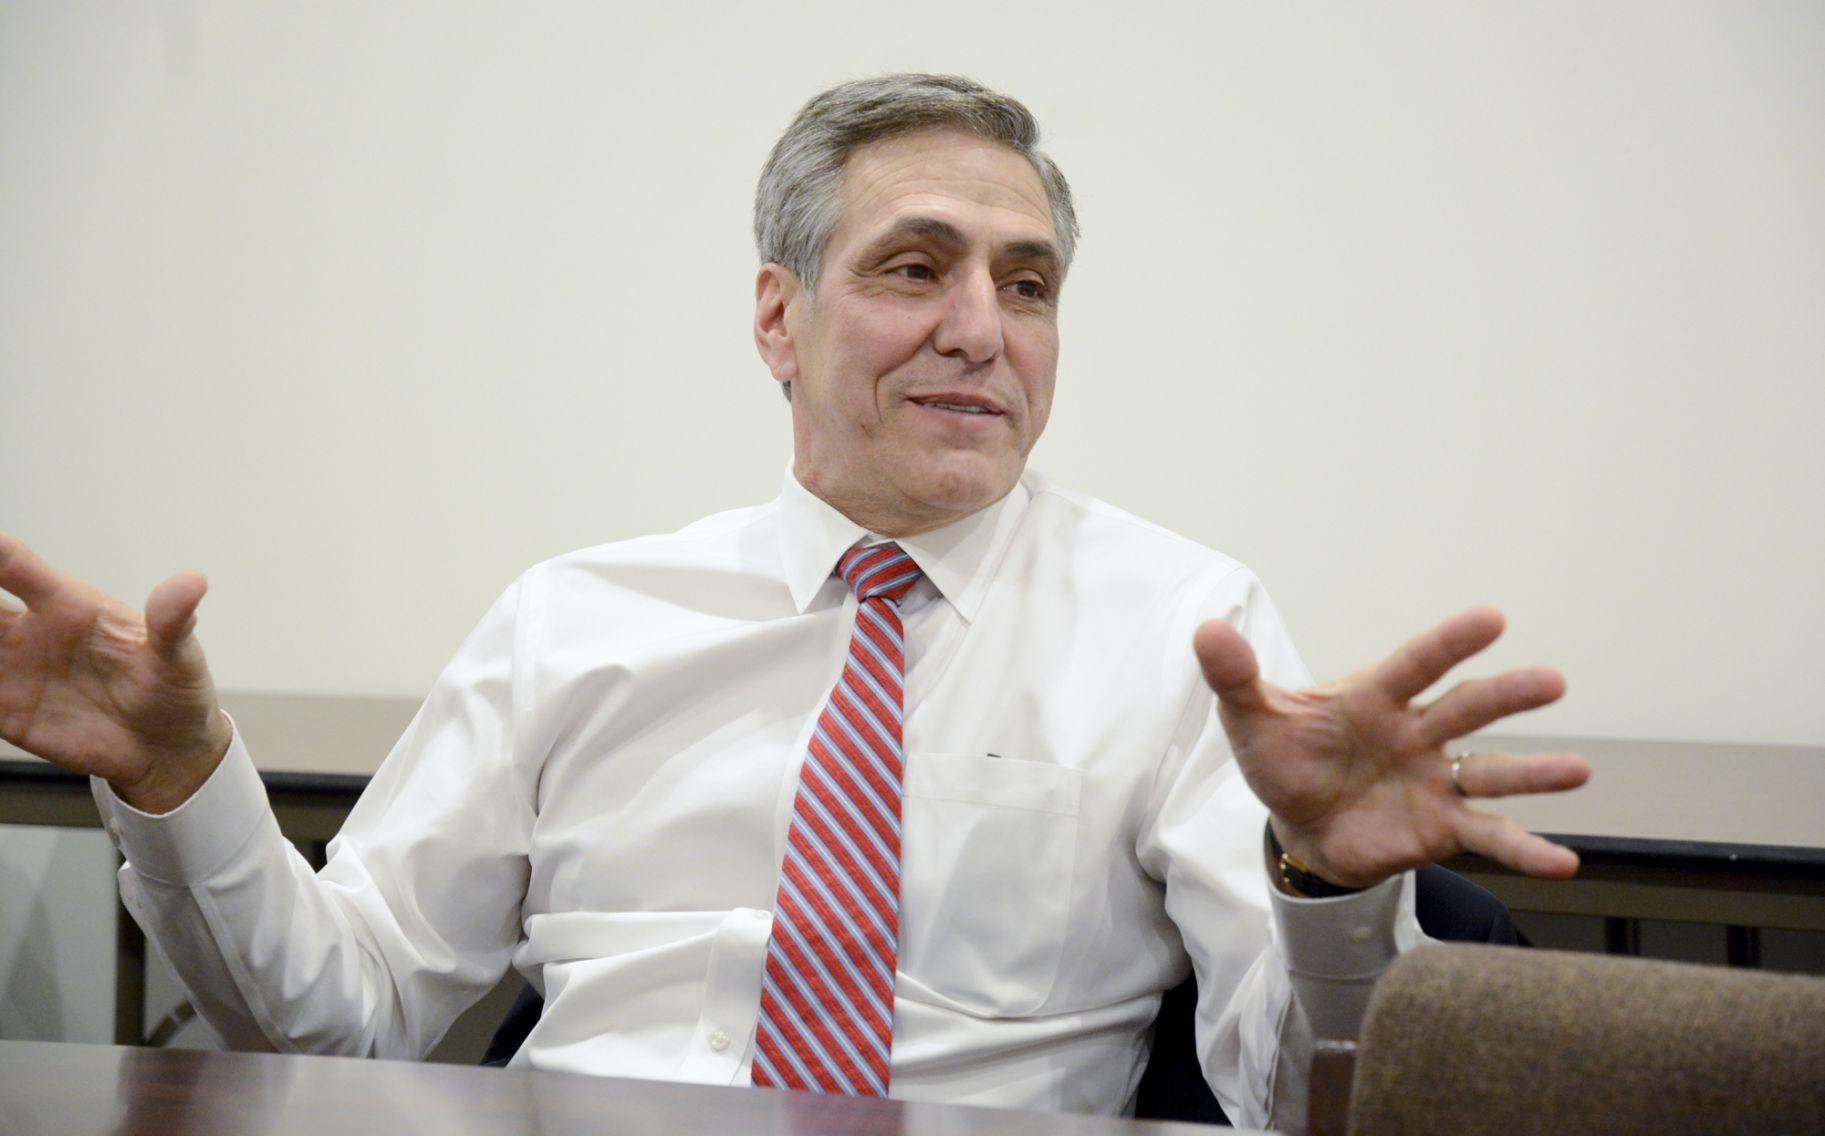 Lou Barletta, early Trump supporter, announces US Senate run against Bob Casey